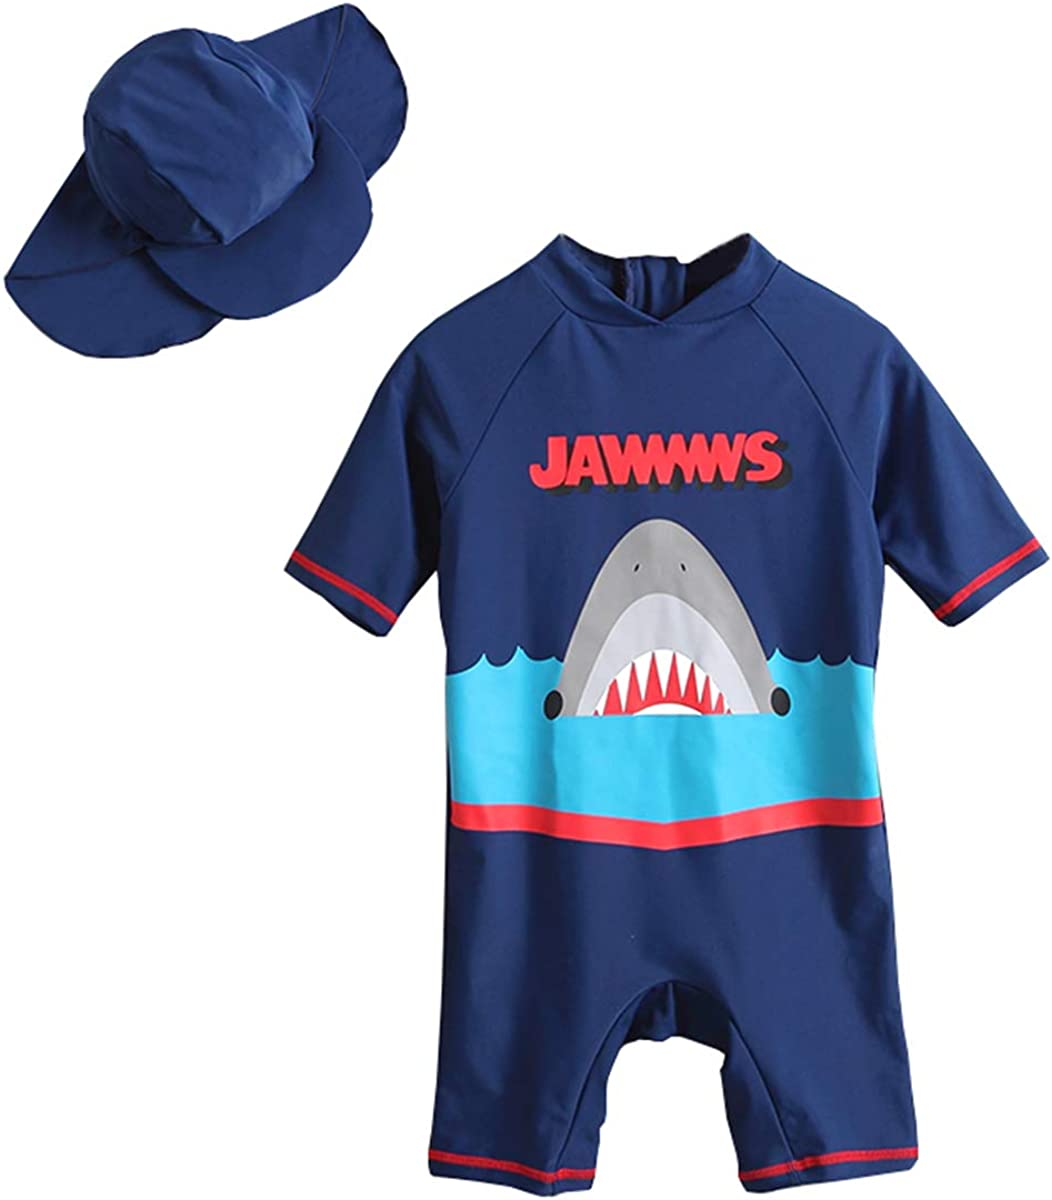 Baby Toddler Boys One Piece Surfing Suit Zip Up Swimsuit UV Sun Protective Bathing Suit Sunsuit with Hat